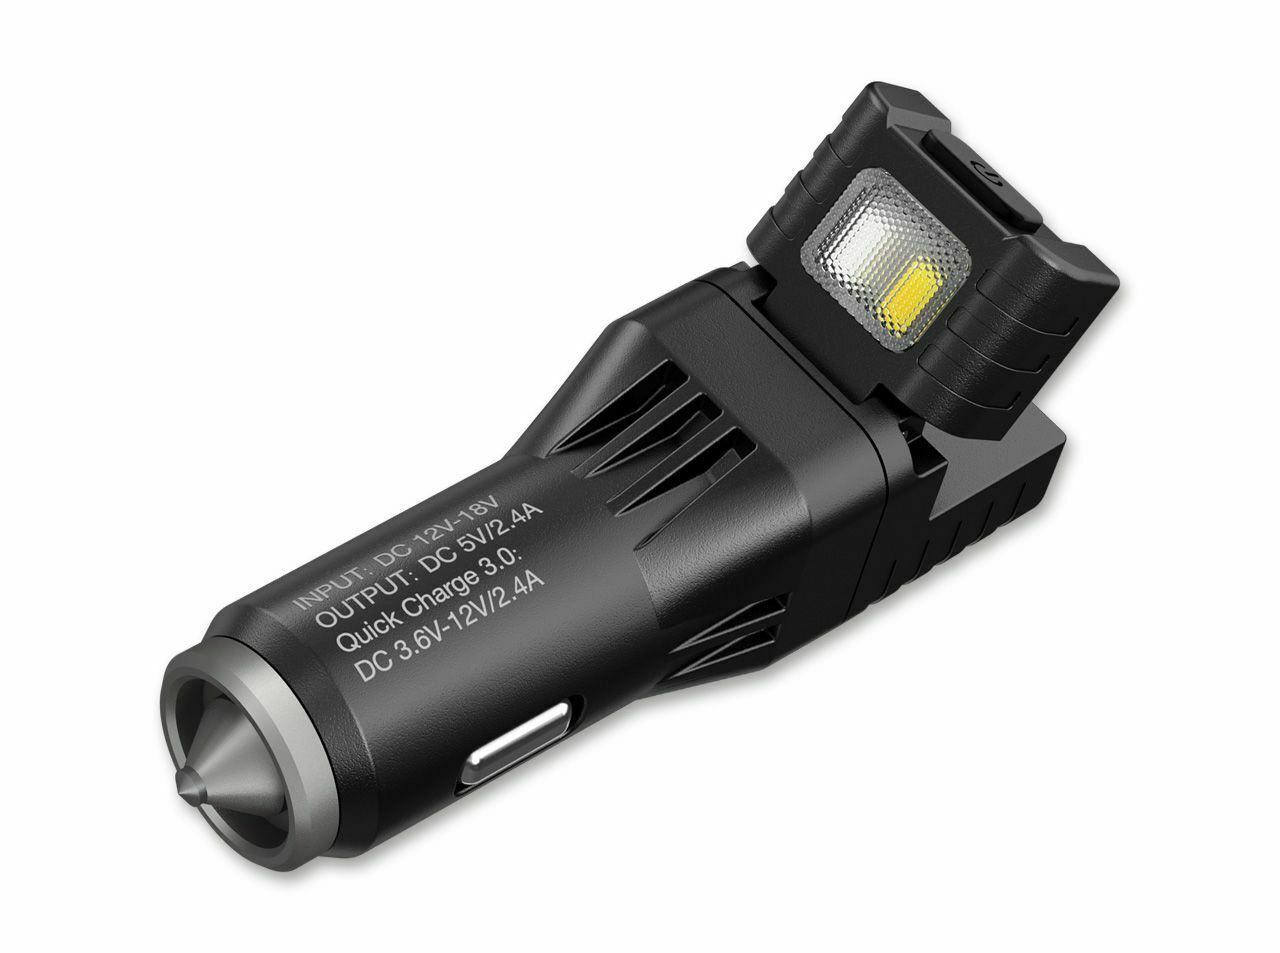 Nitecore vcl10 All-in-one charger & Ni-Glo S-MARKER